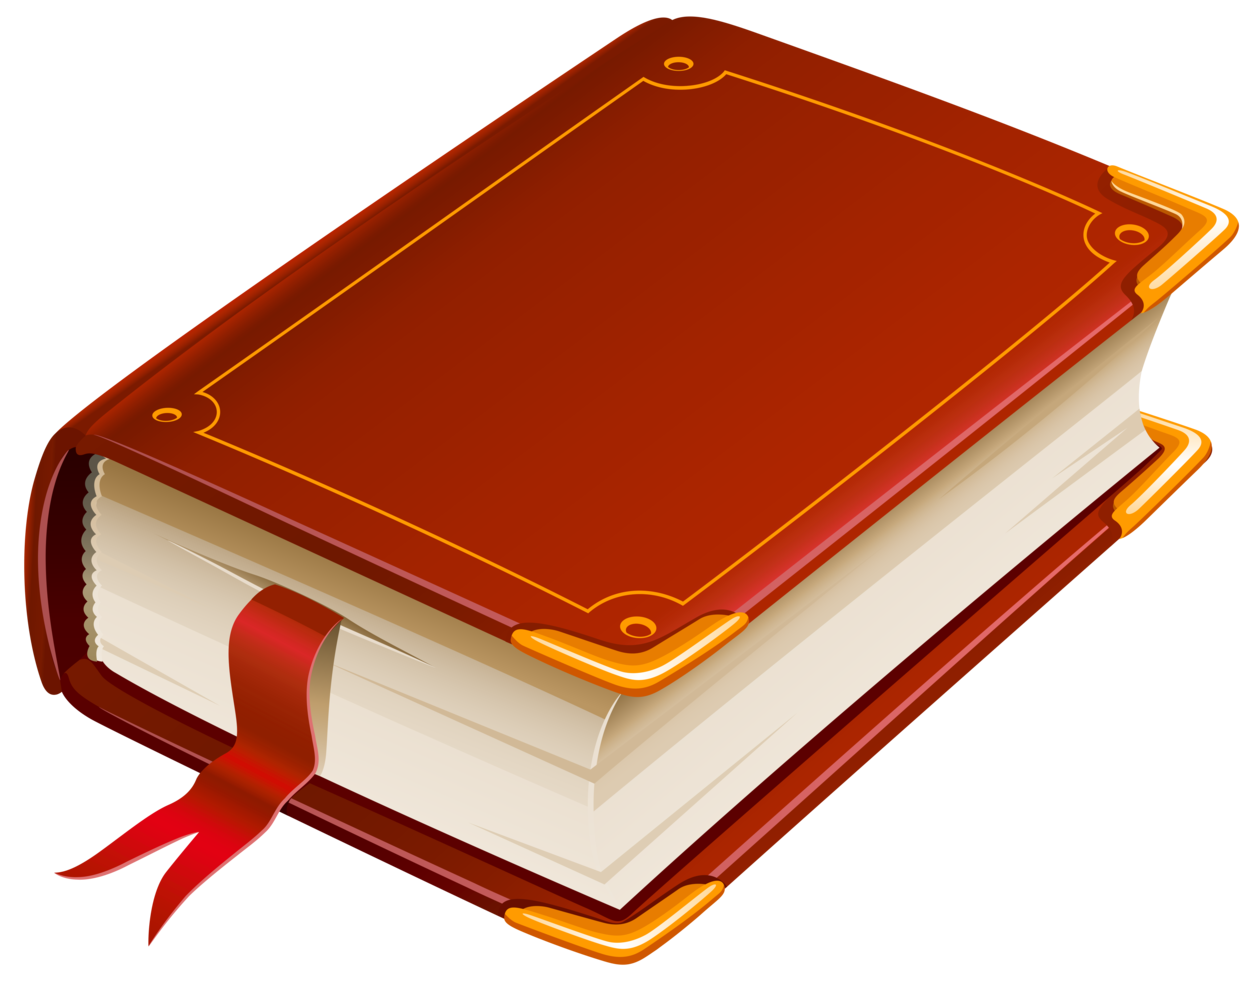 Clipart book orange. Red png